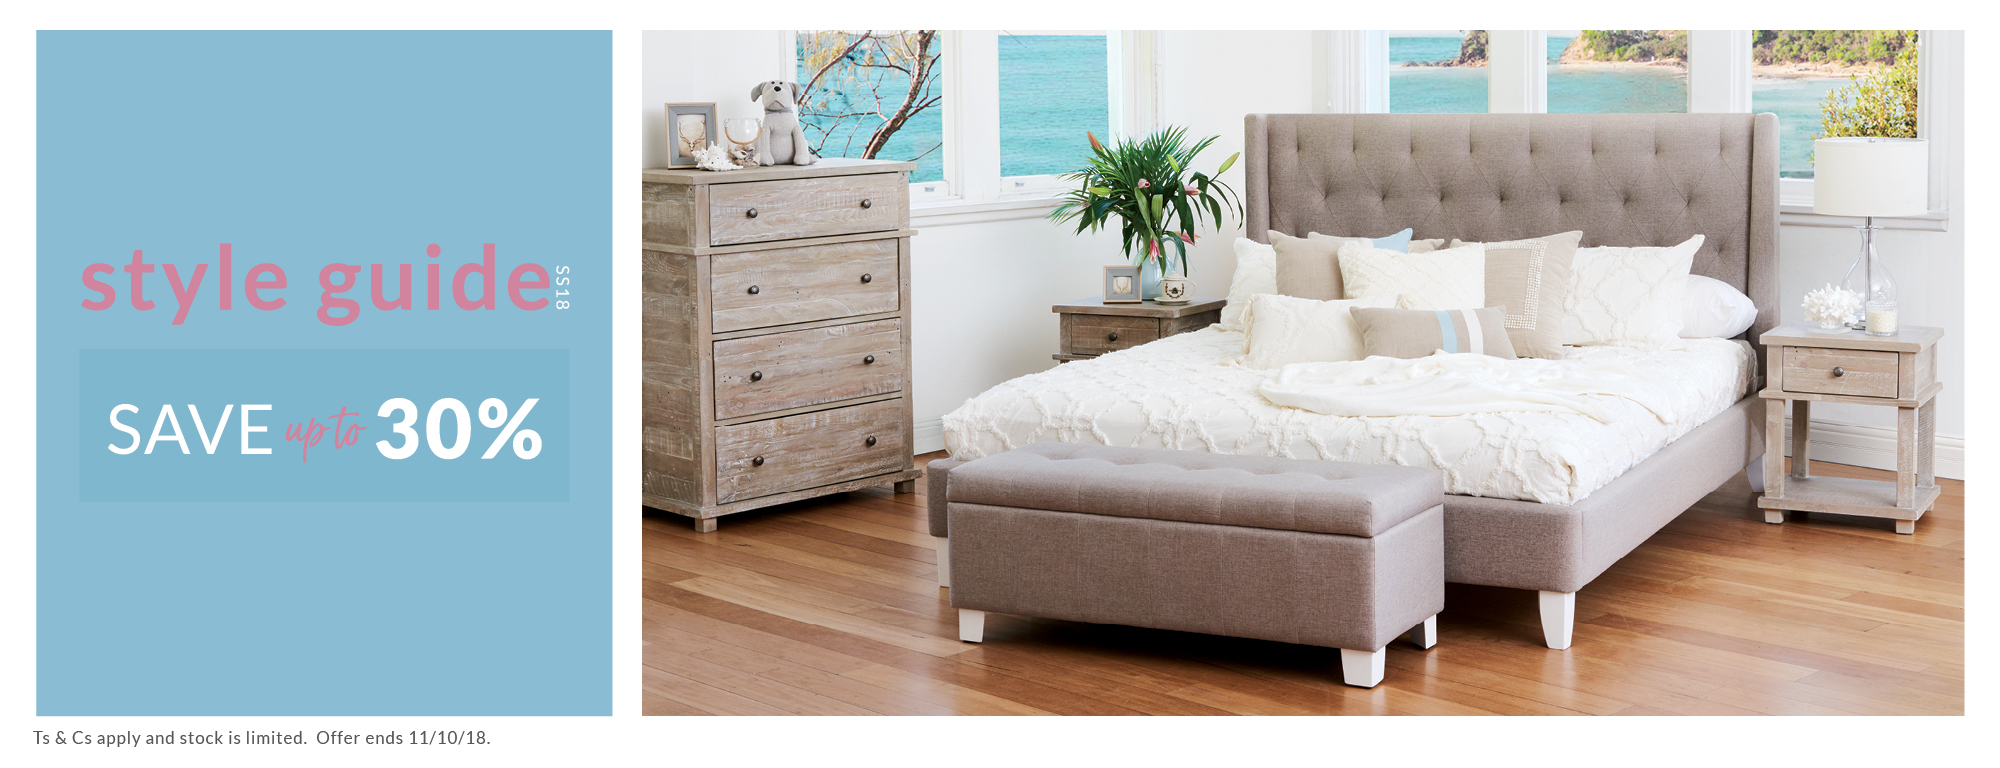 Furniture Stores Penrith Quality Timber Furniture Online Rustic Country Style